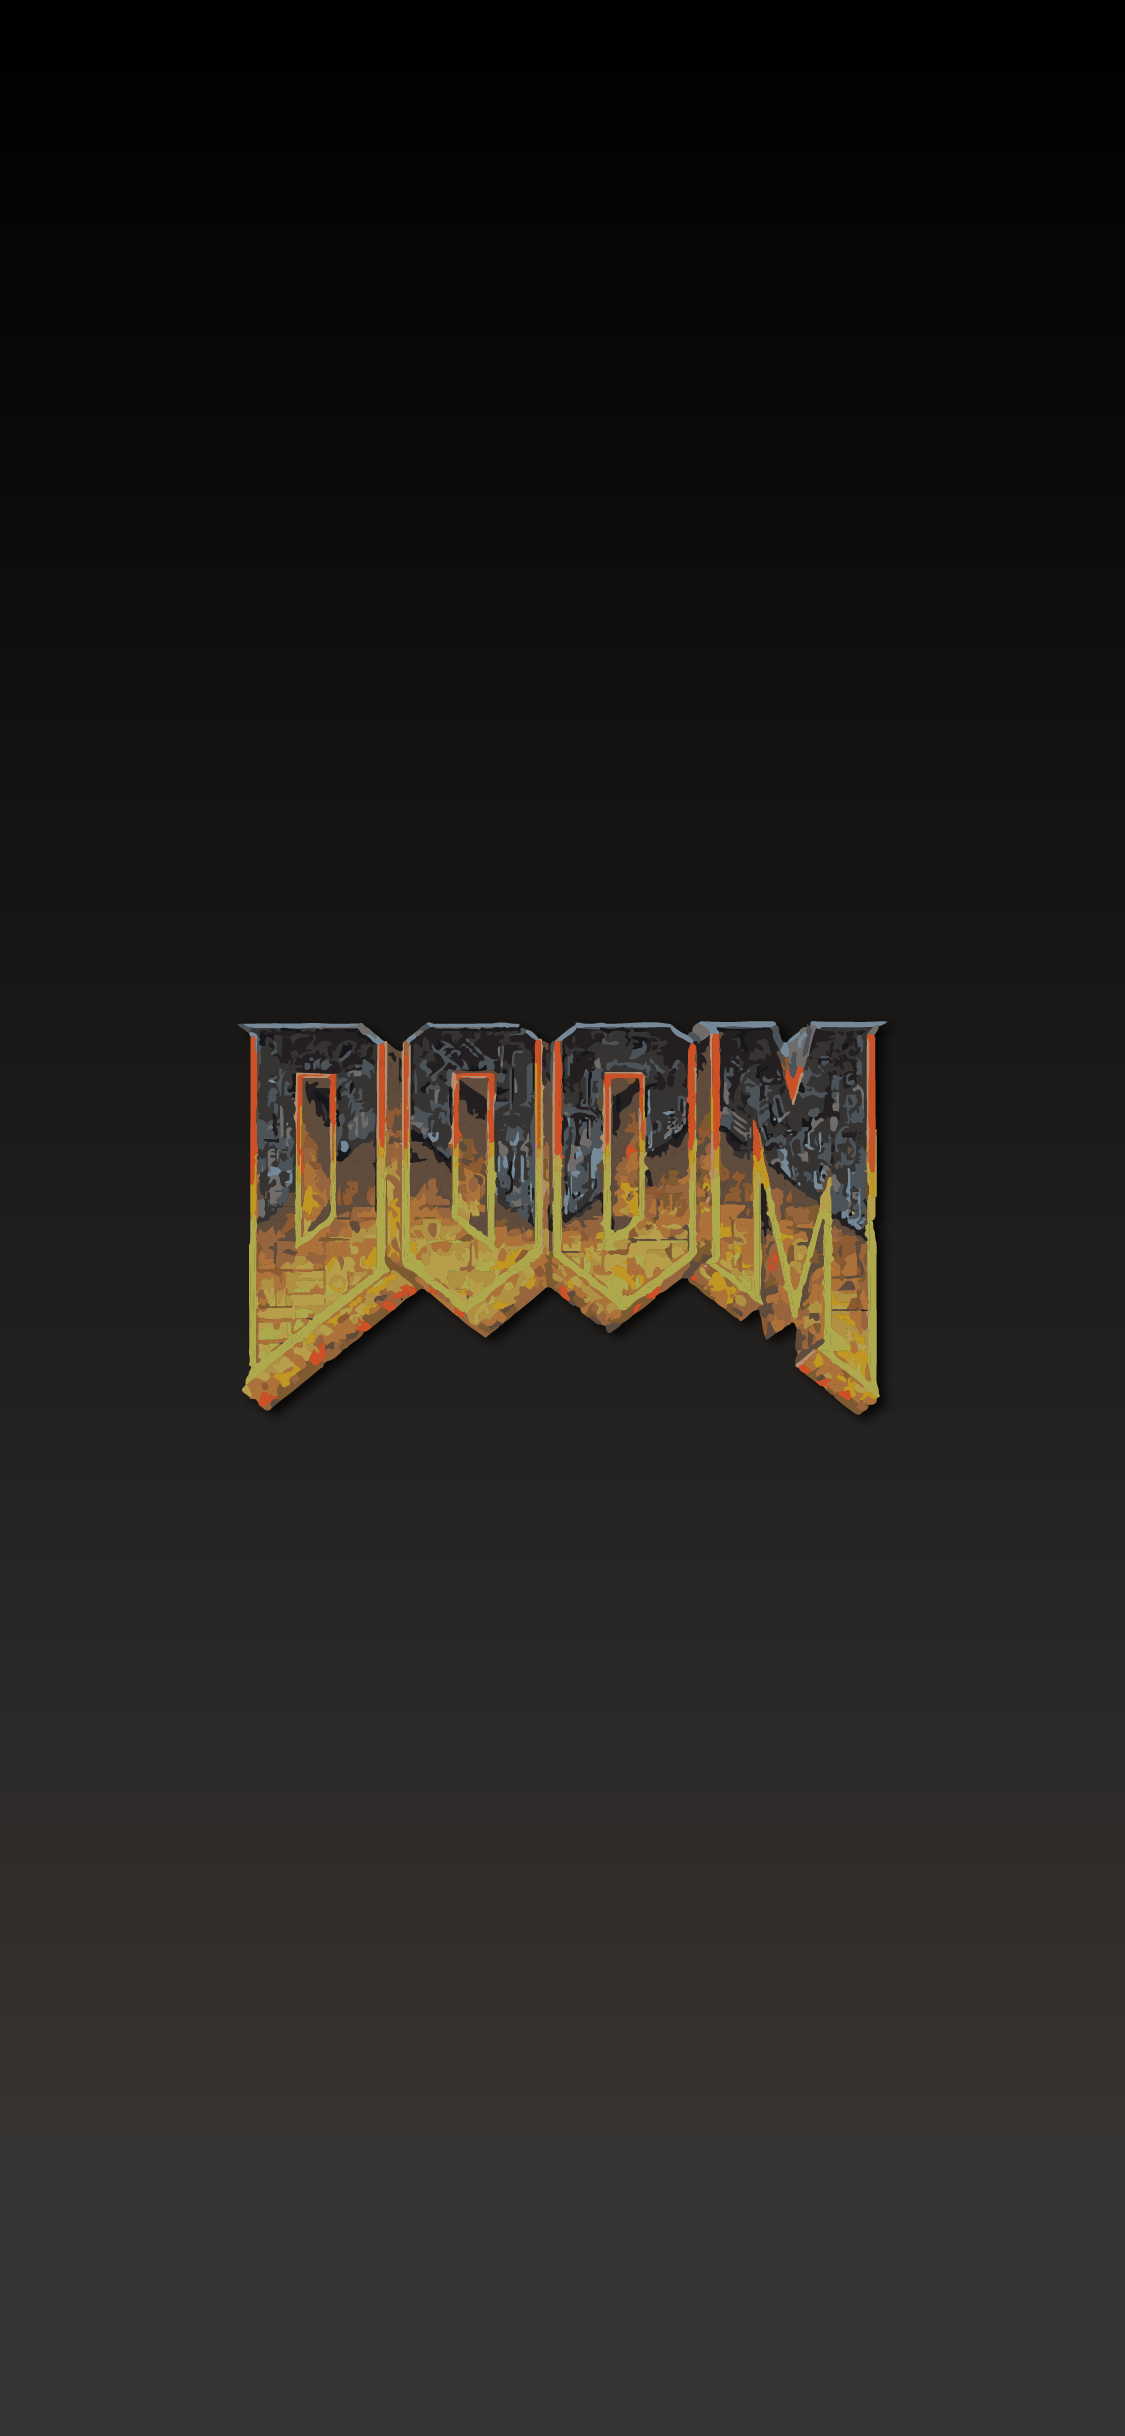 DOOM LOGO WALLPAPER FOR MOBILE PHONE